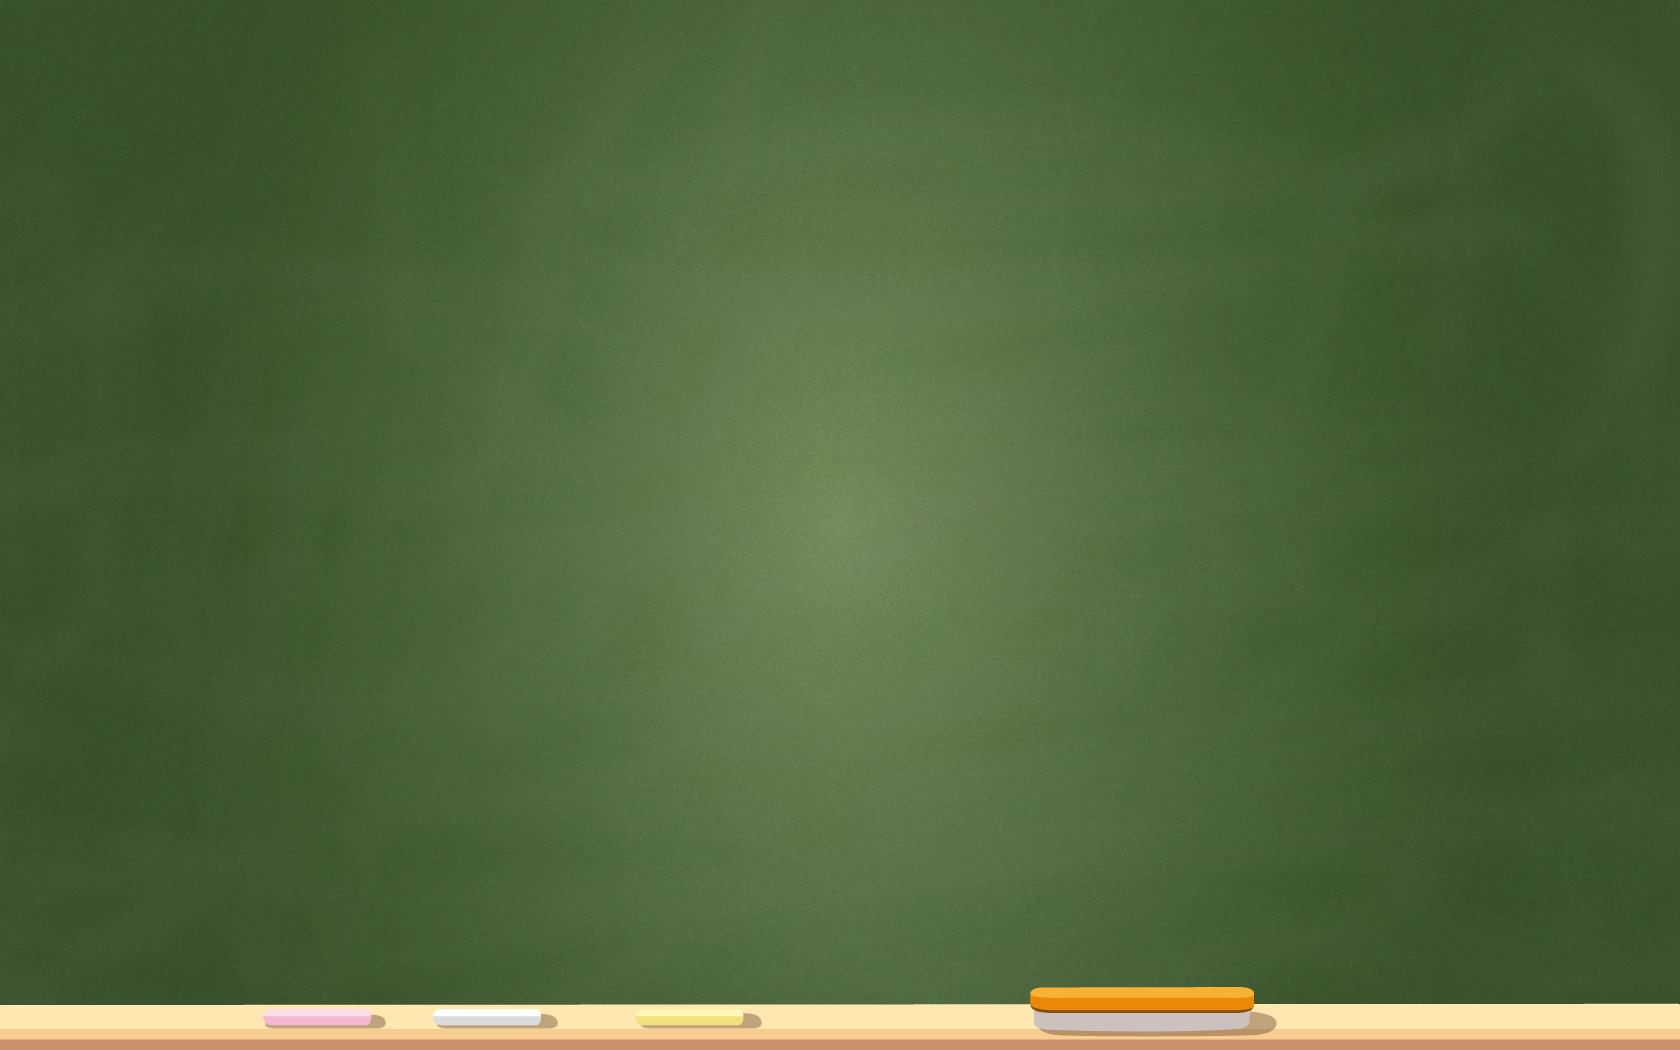 backgrounds green chalkboard texture